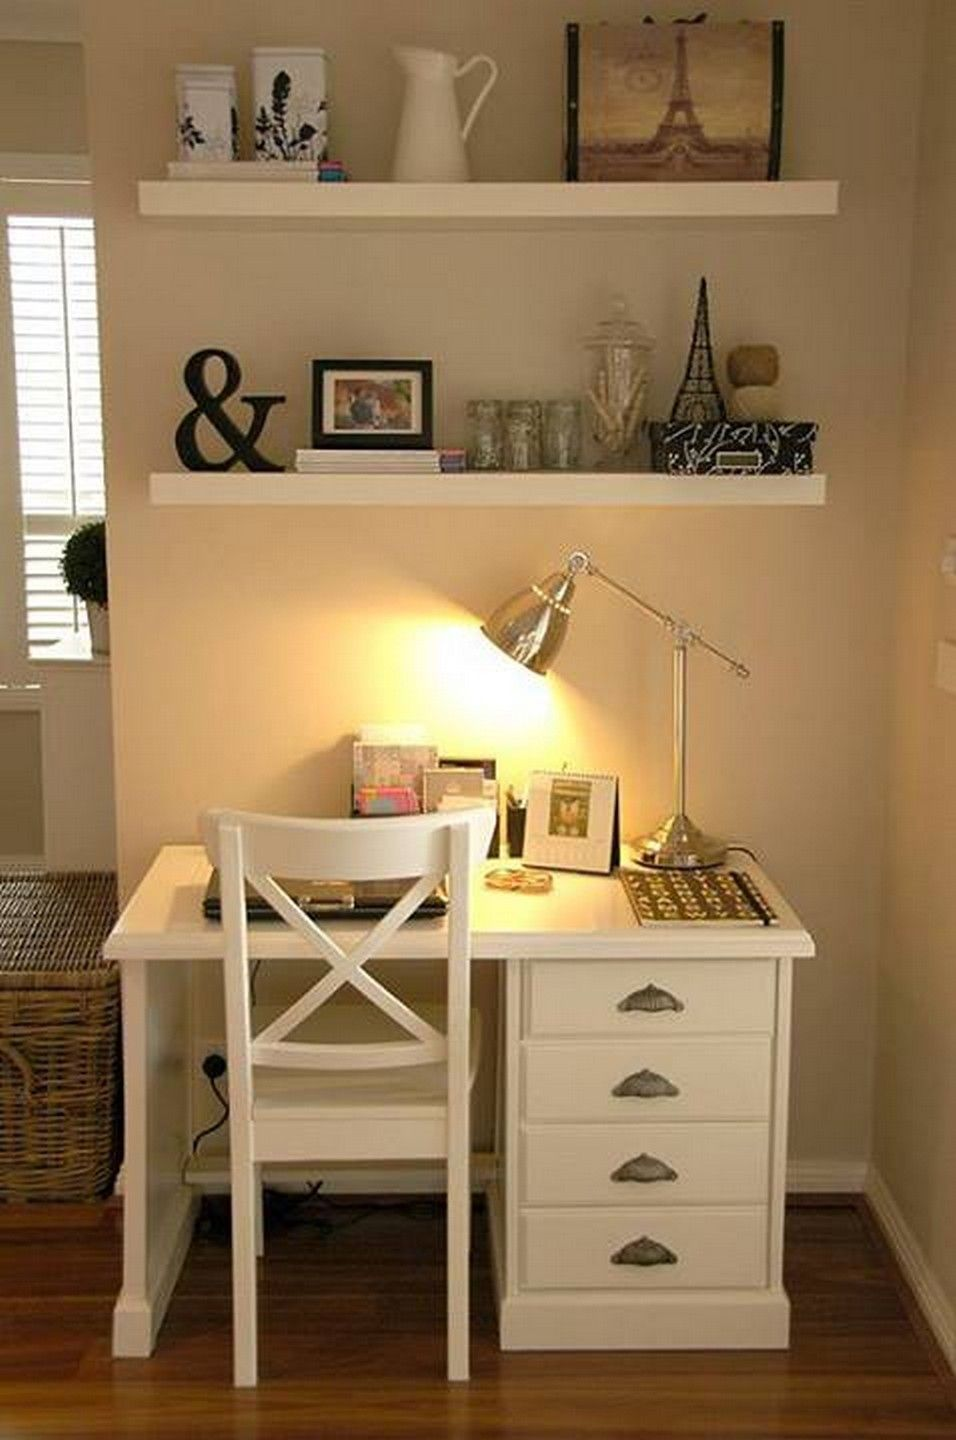 25 Small Space Ideas for The Bedroom And Home Office. 25 Small Space Ideas for The Bedroom And Home Office   Shelves